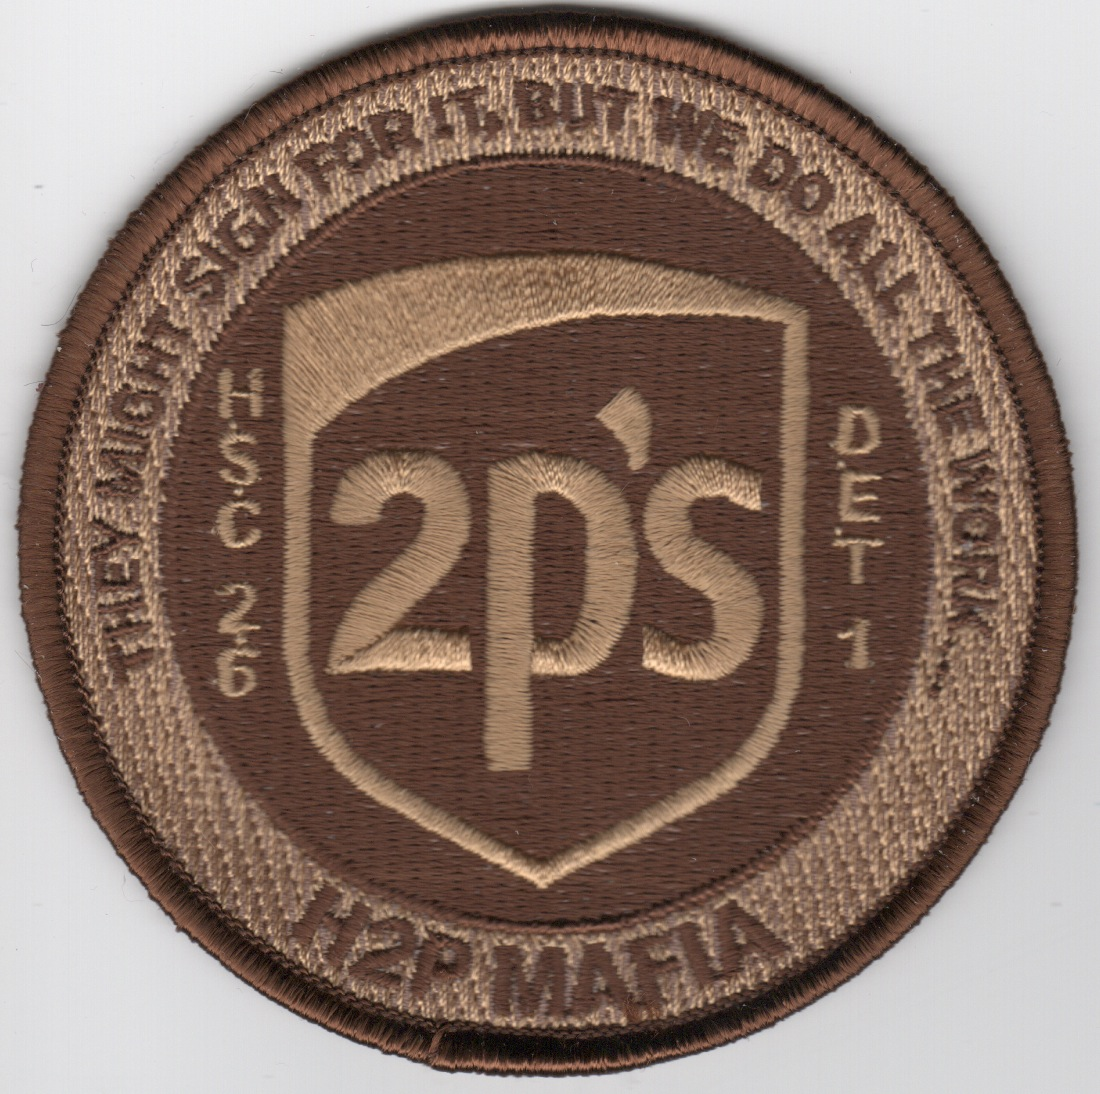 HSC-26 Det-1 '2PS' Patch (Des)